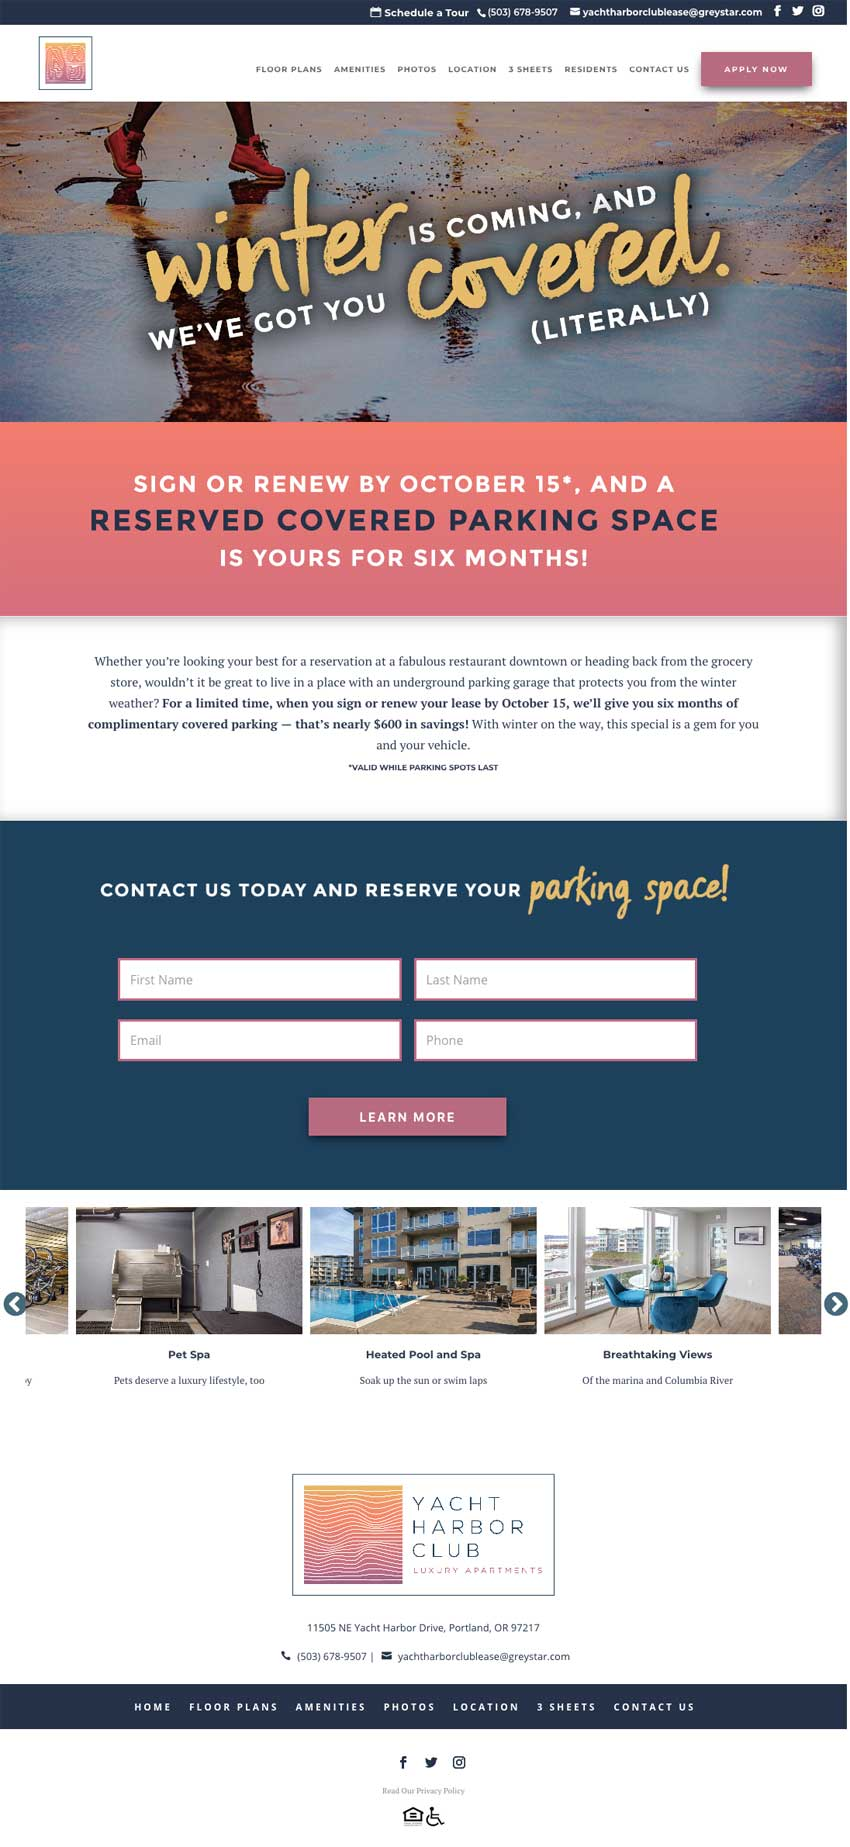 Campus Advantage landing page for Yacht Harbor Free Parking campaign